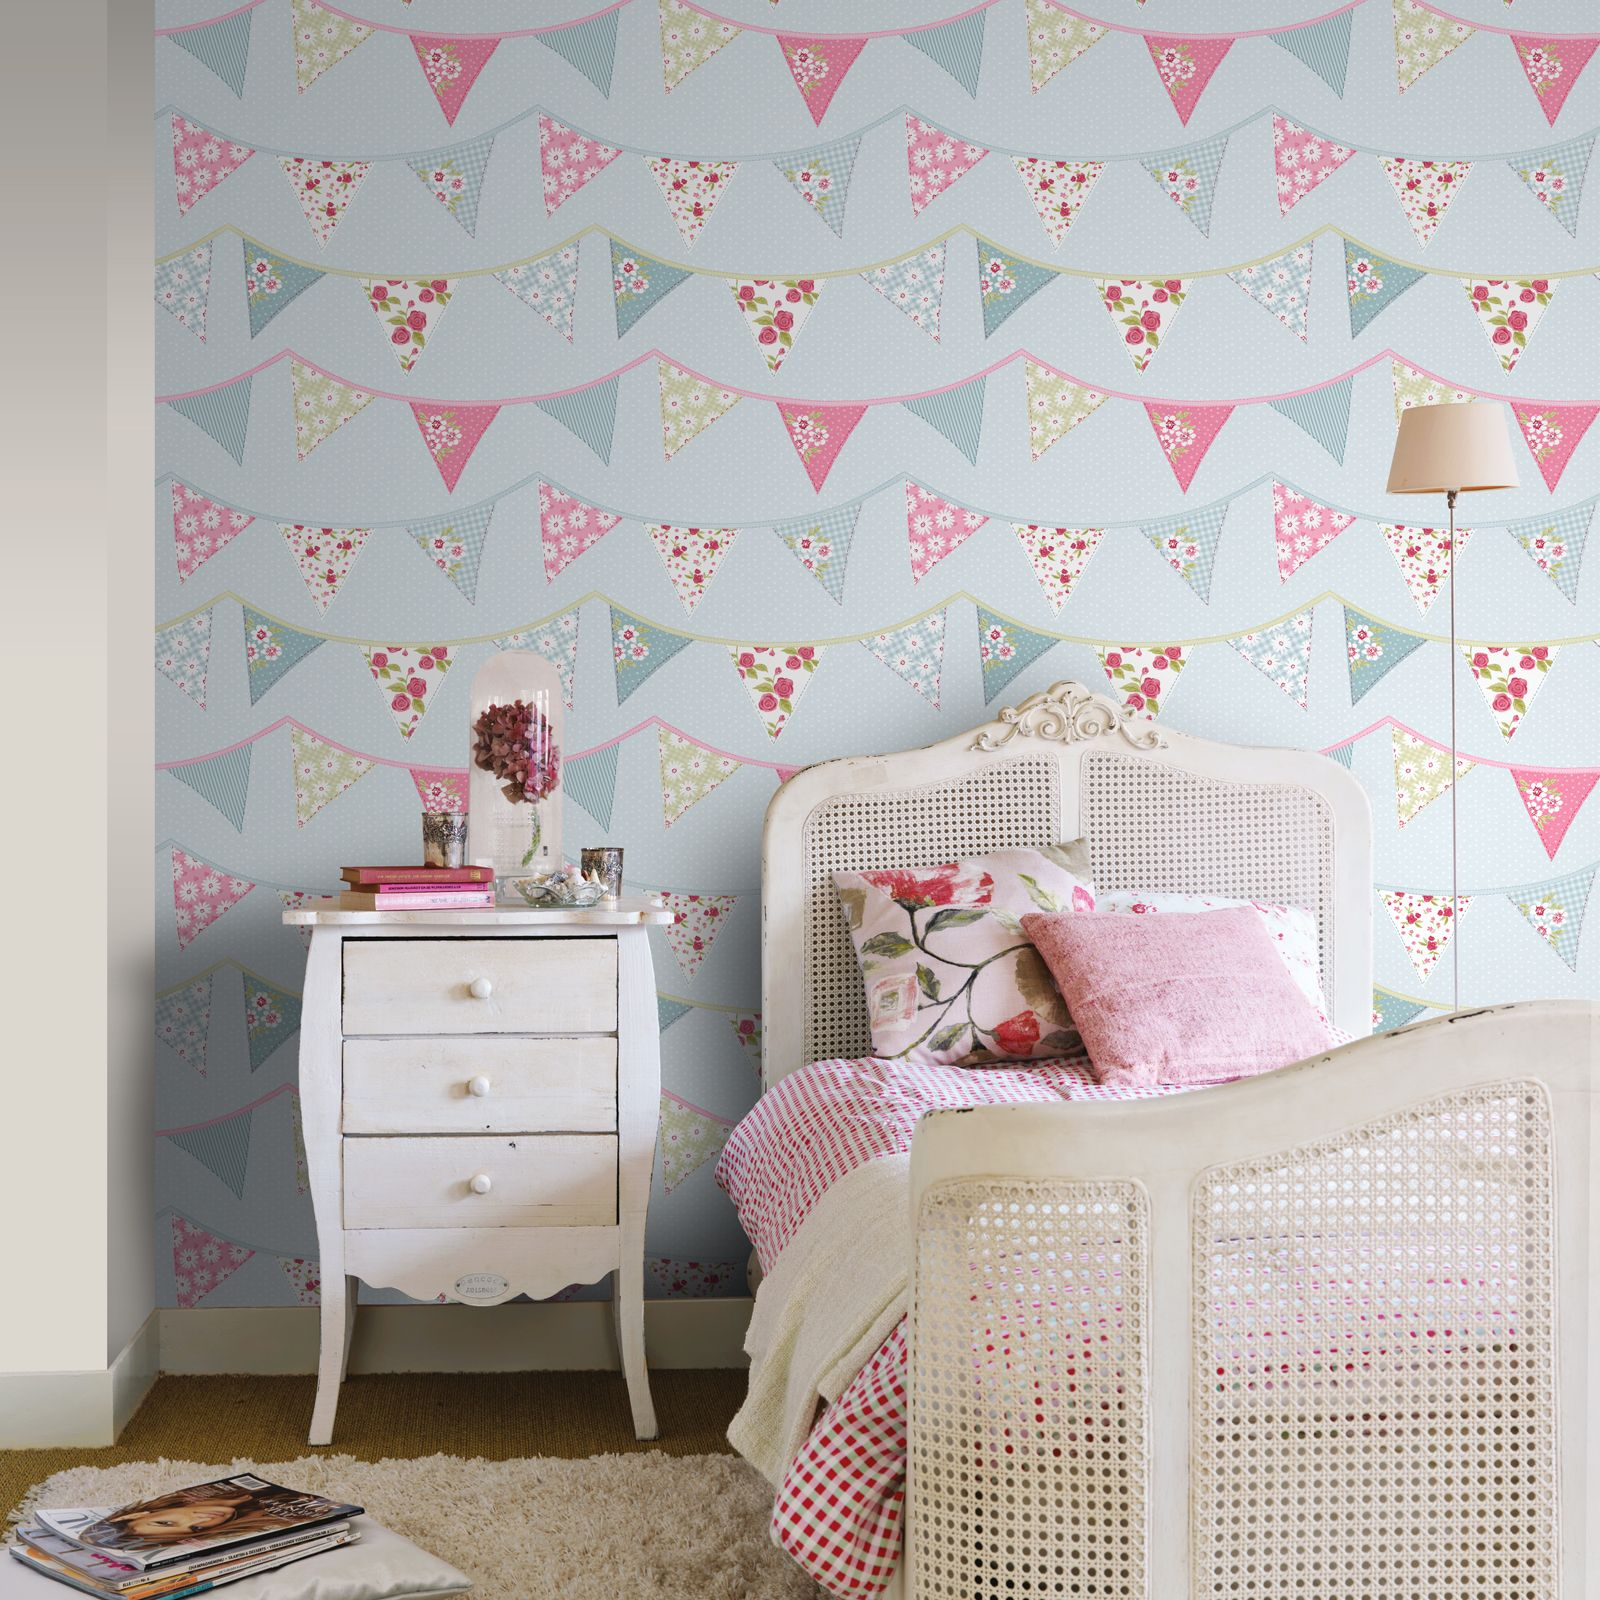 Girls Bedroom Wallpaper Kids Unicorn Mermaid Glitter Ebay